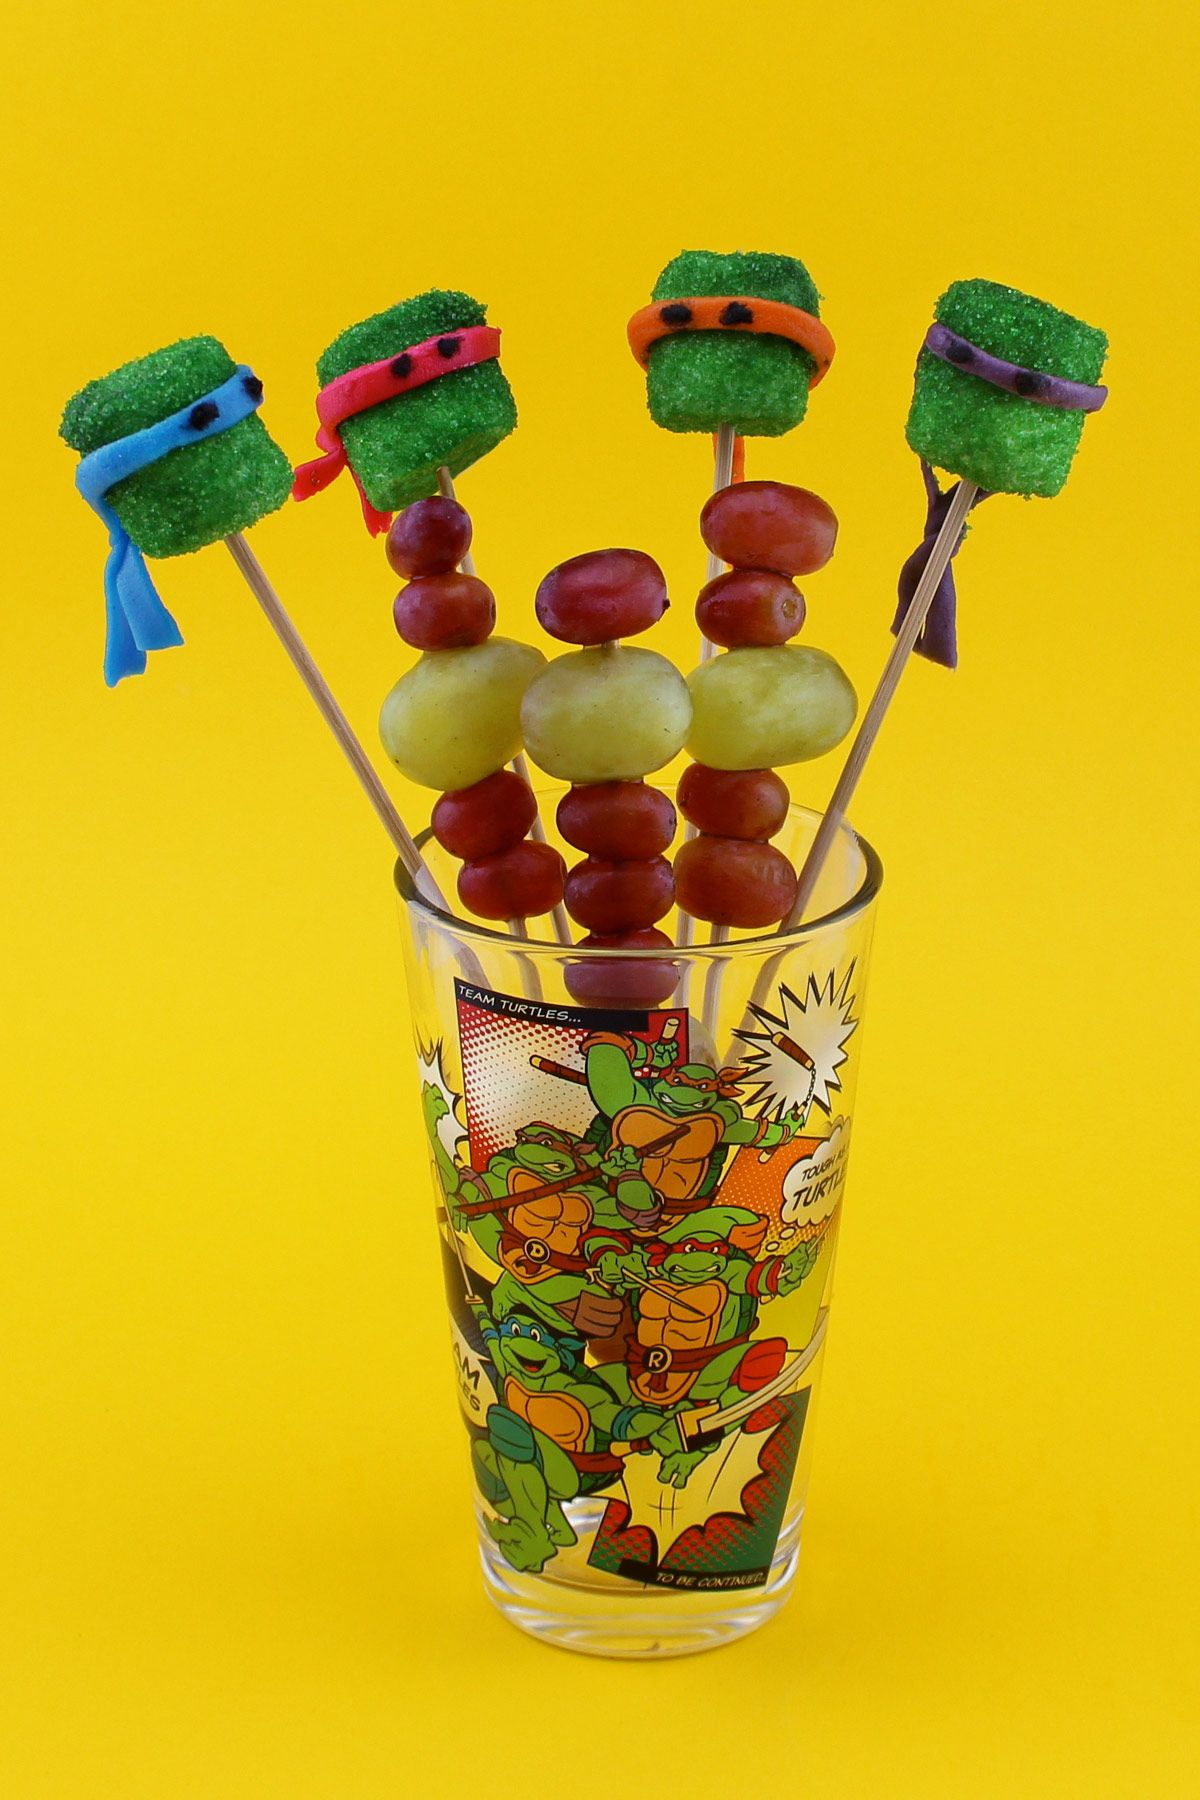 Coat marshmallows in sprinkles for a delicious and adorable Ninja Turtles treat!